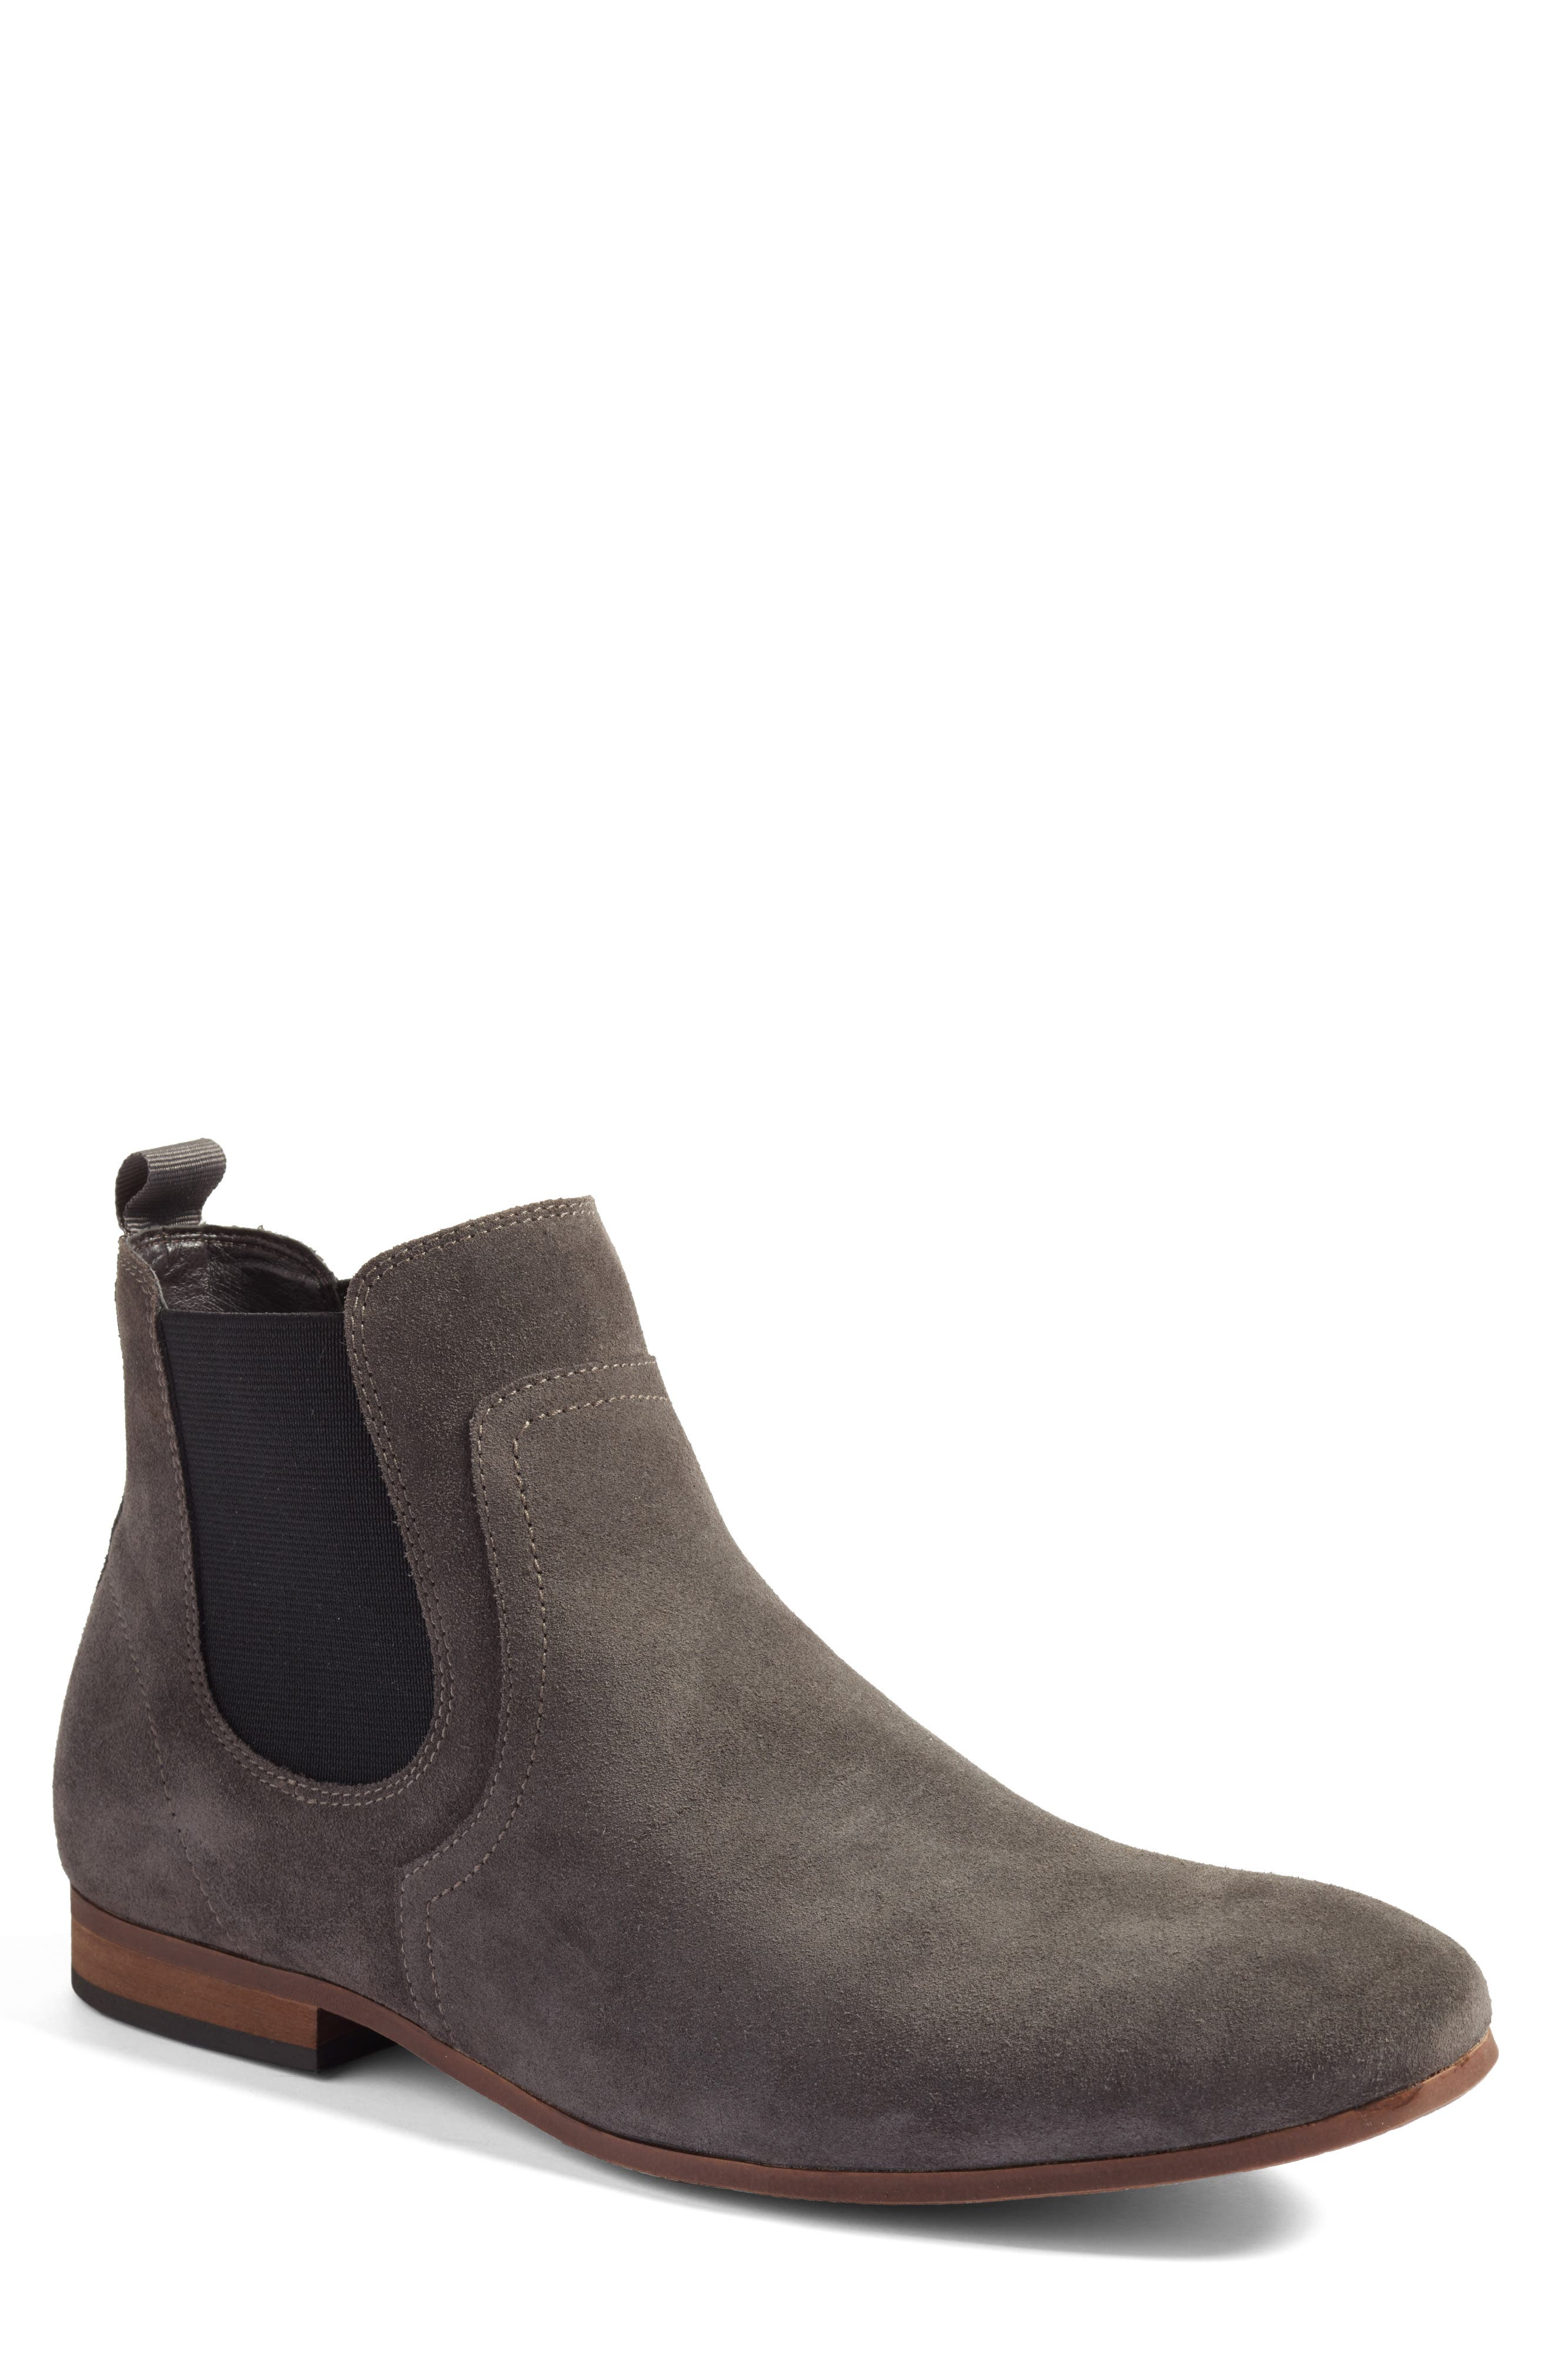 Brysen Chelsea Boot,                             Alternate thumbnail 15, color,